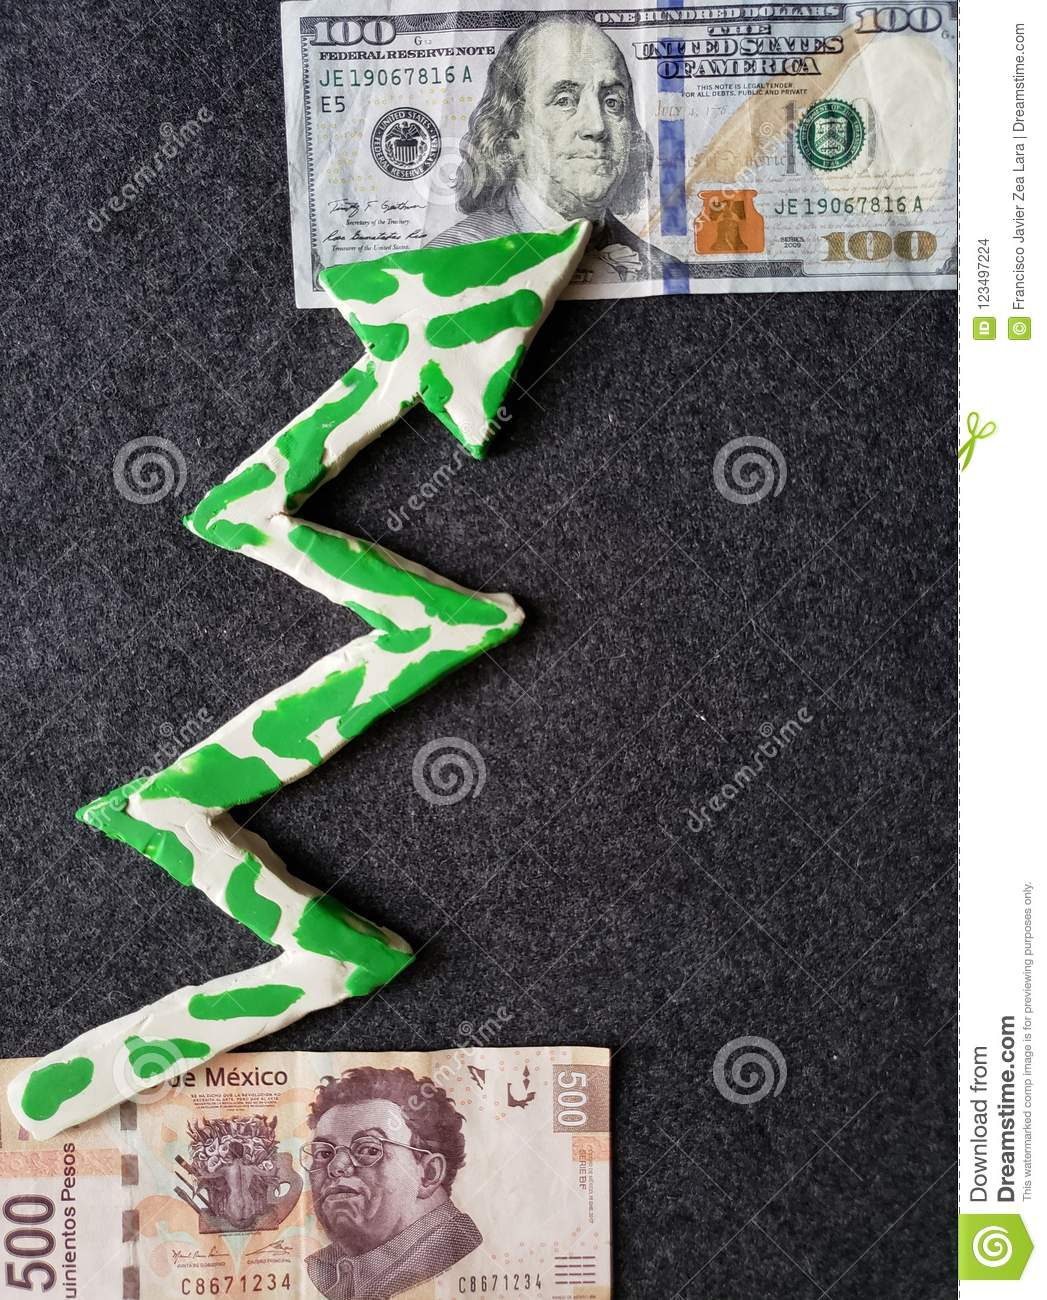 The American Dollar Rises In Value Against Mexican Peso, 100 Dollar